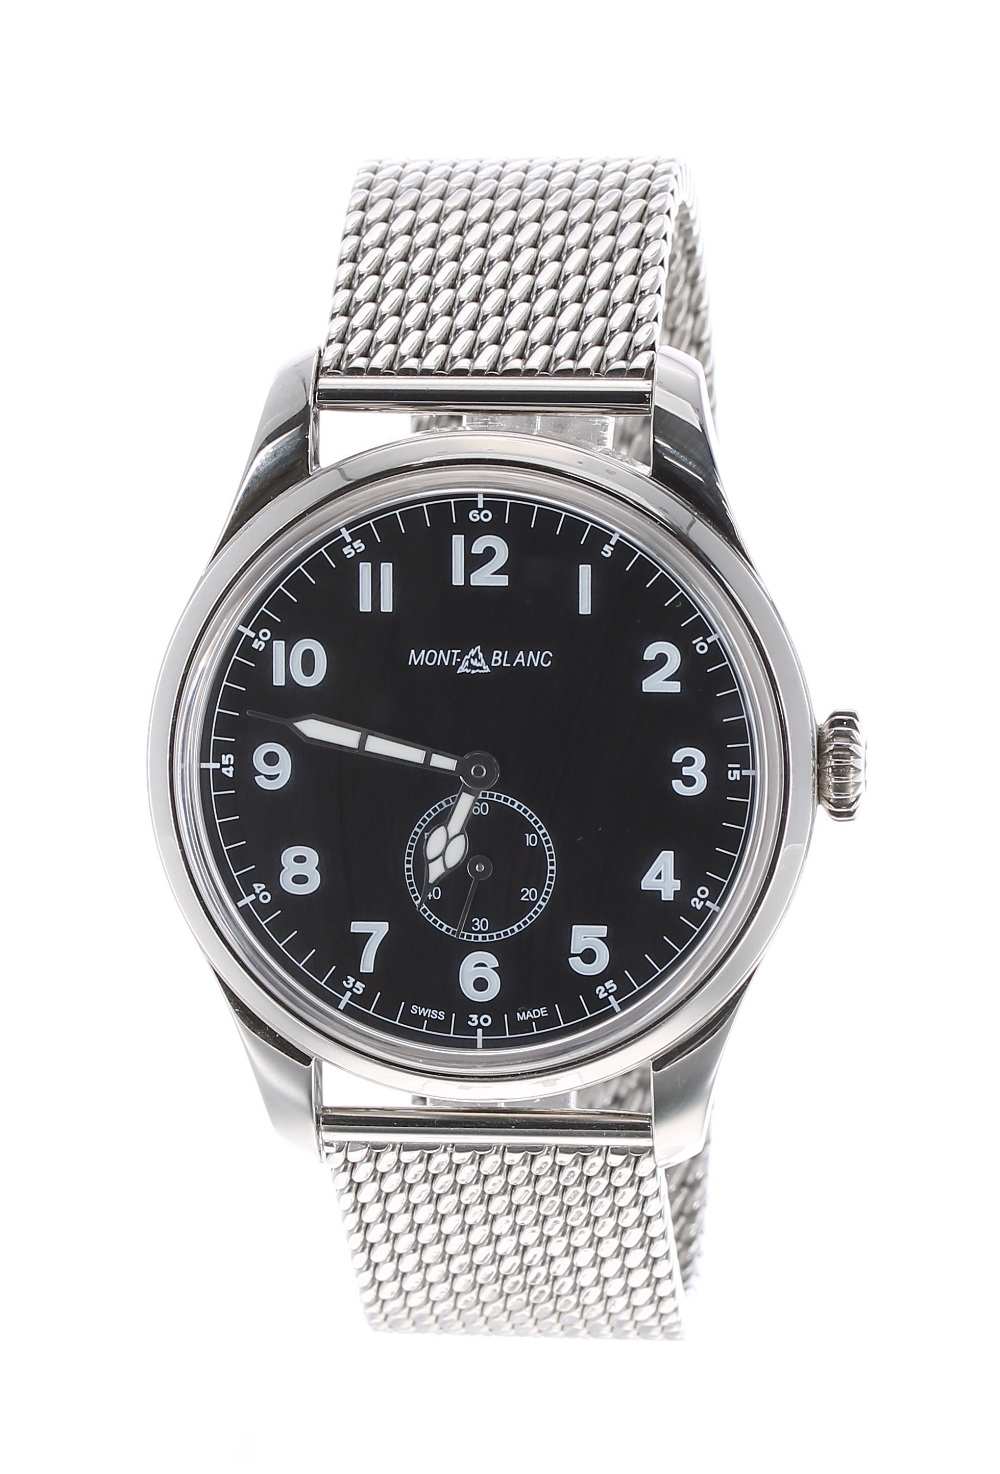 Lot 20 - Montblanc 1858 Military style oversized automatic gentleman's wristwatch, ref. 7389, circa 2019,